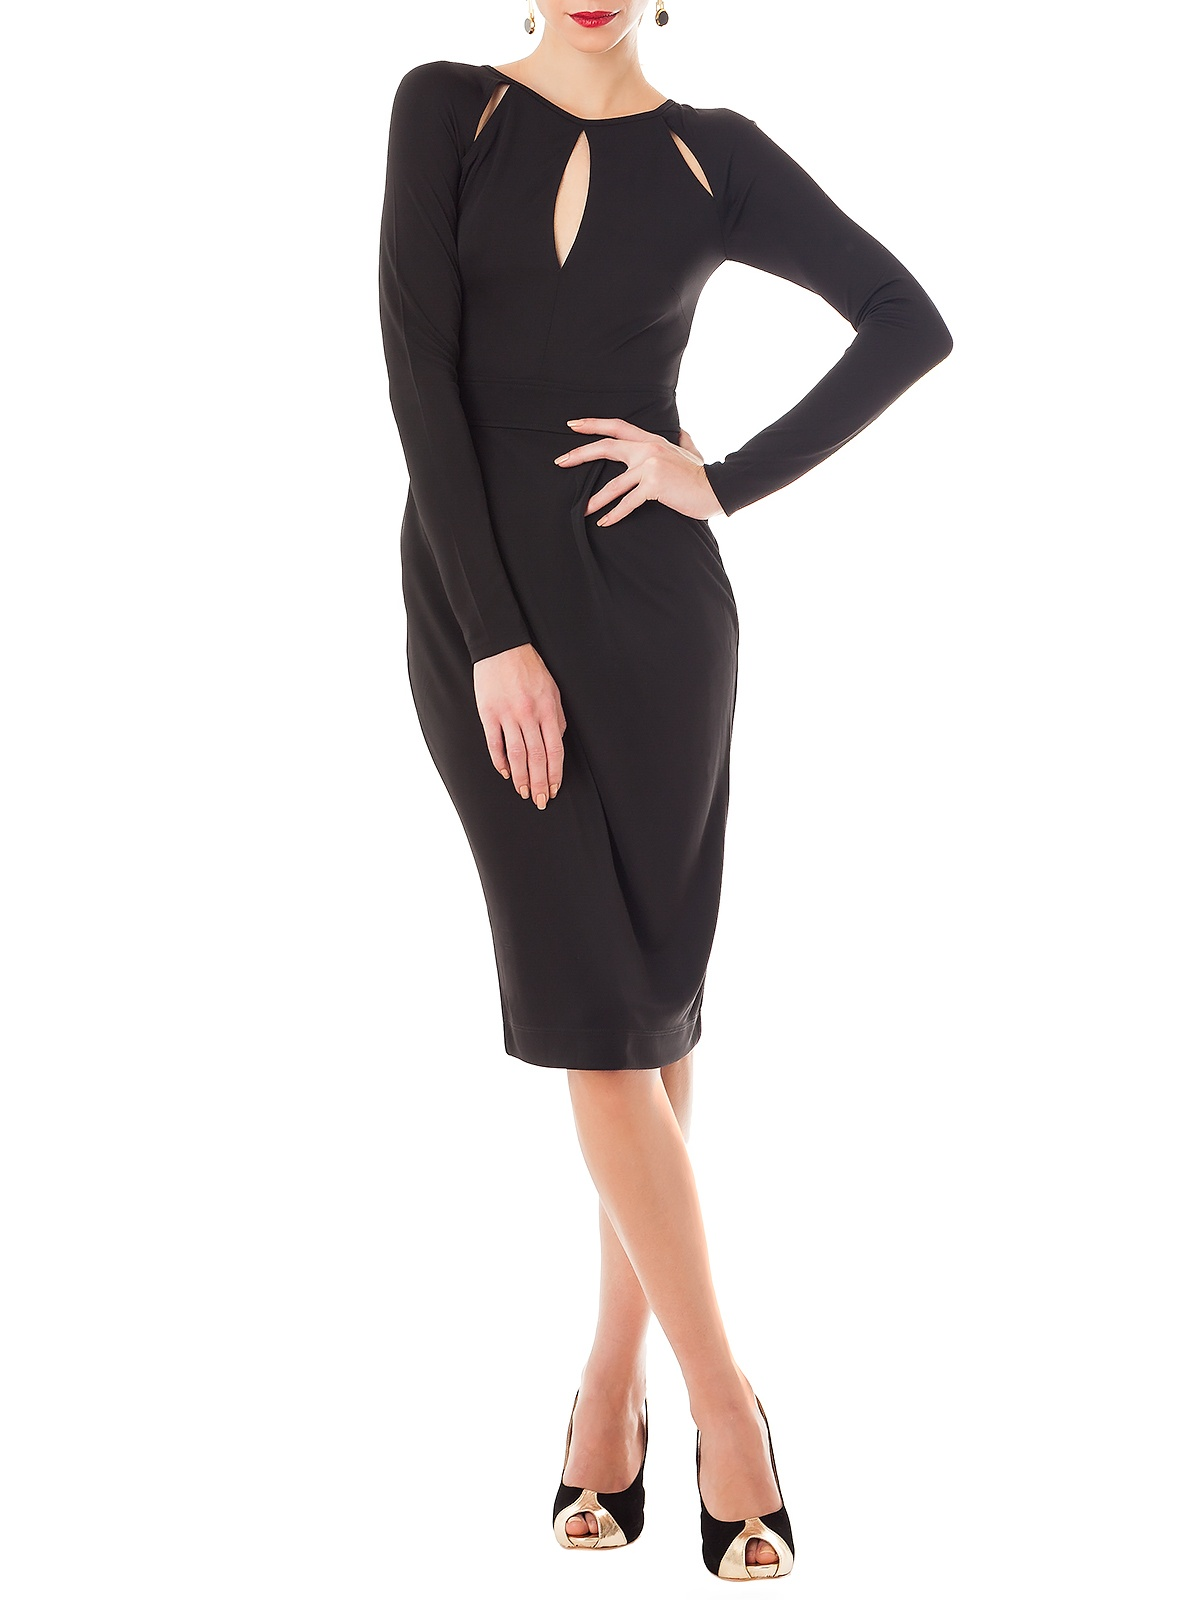 TEARS BLACK DRESS | GIRISSIMA.COM - Collectible fashion to love and to last